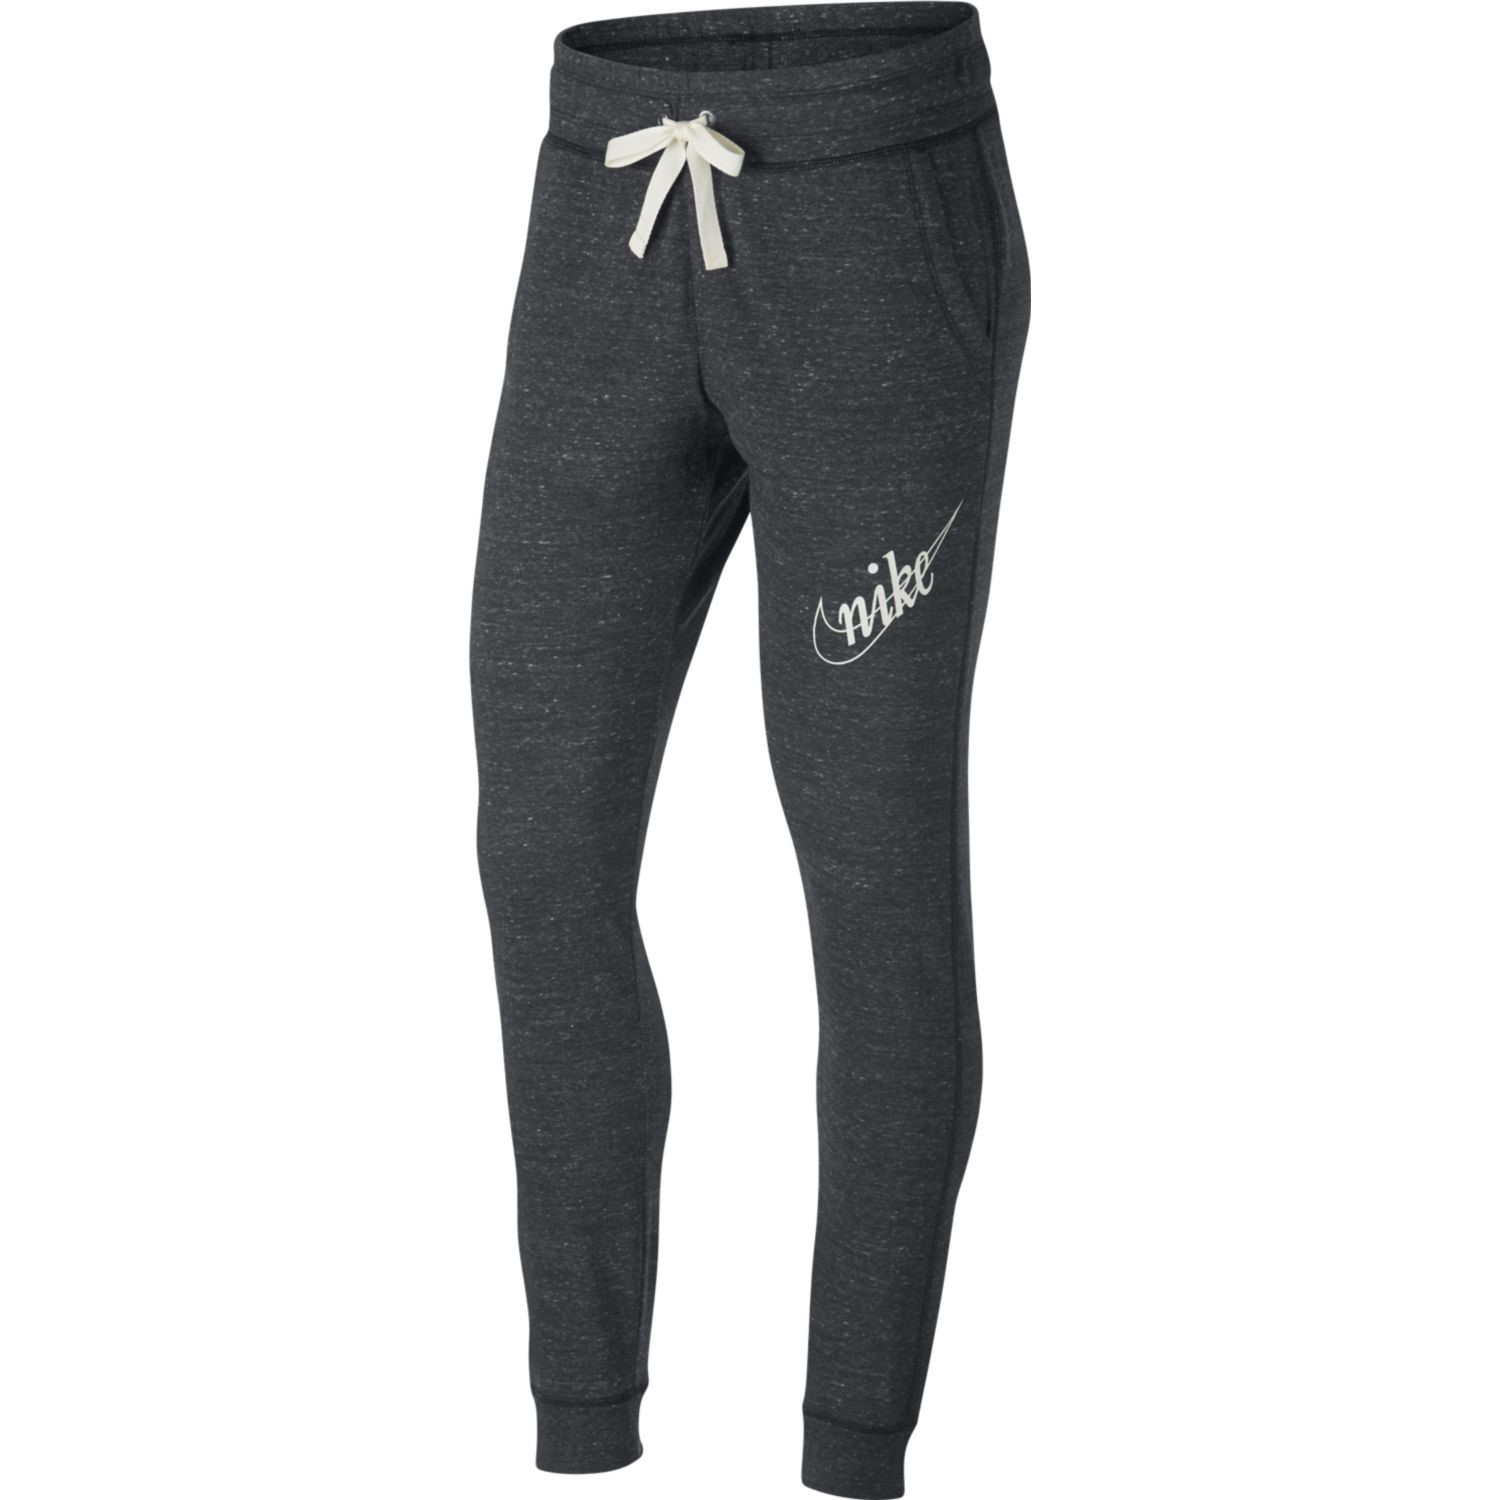 b7c1b61e7835 Nike Gym Vintage Womens Pants - Anthracite Sail